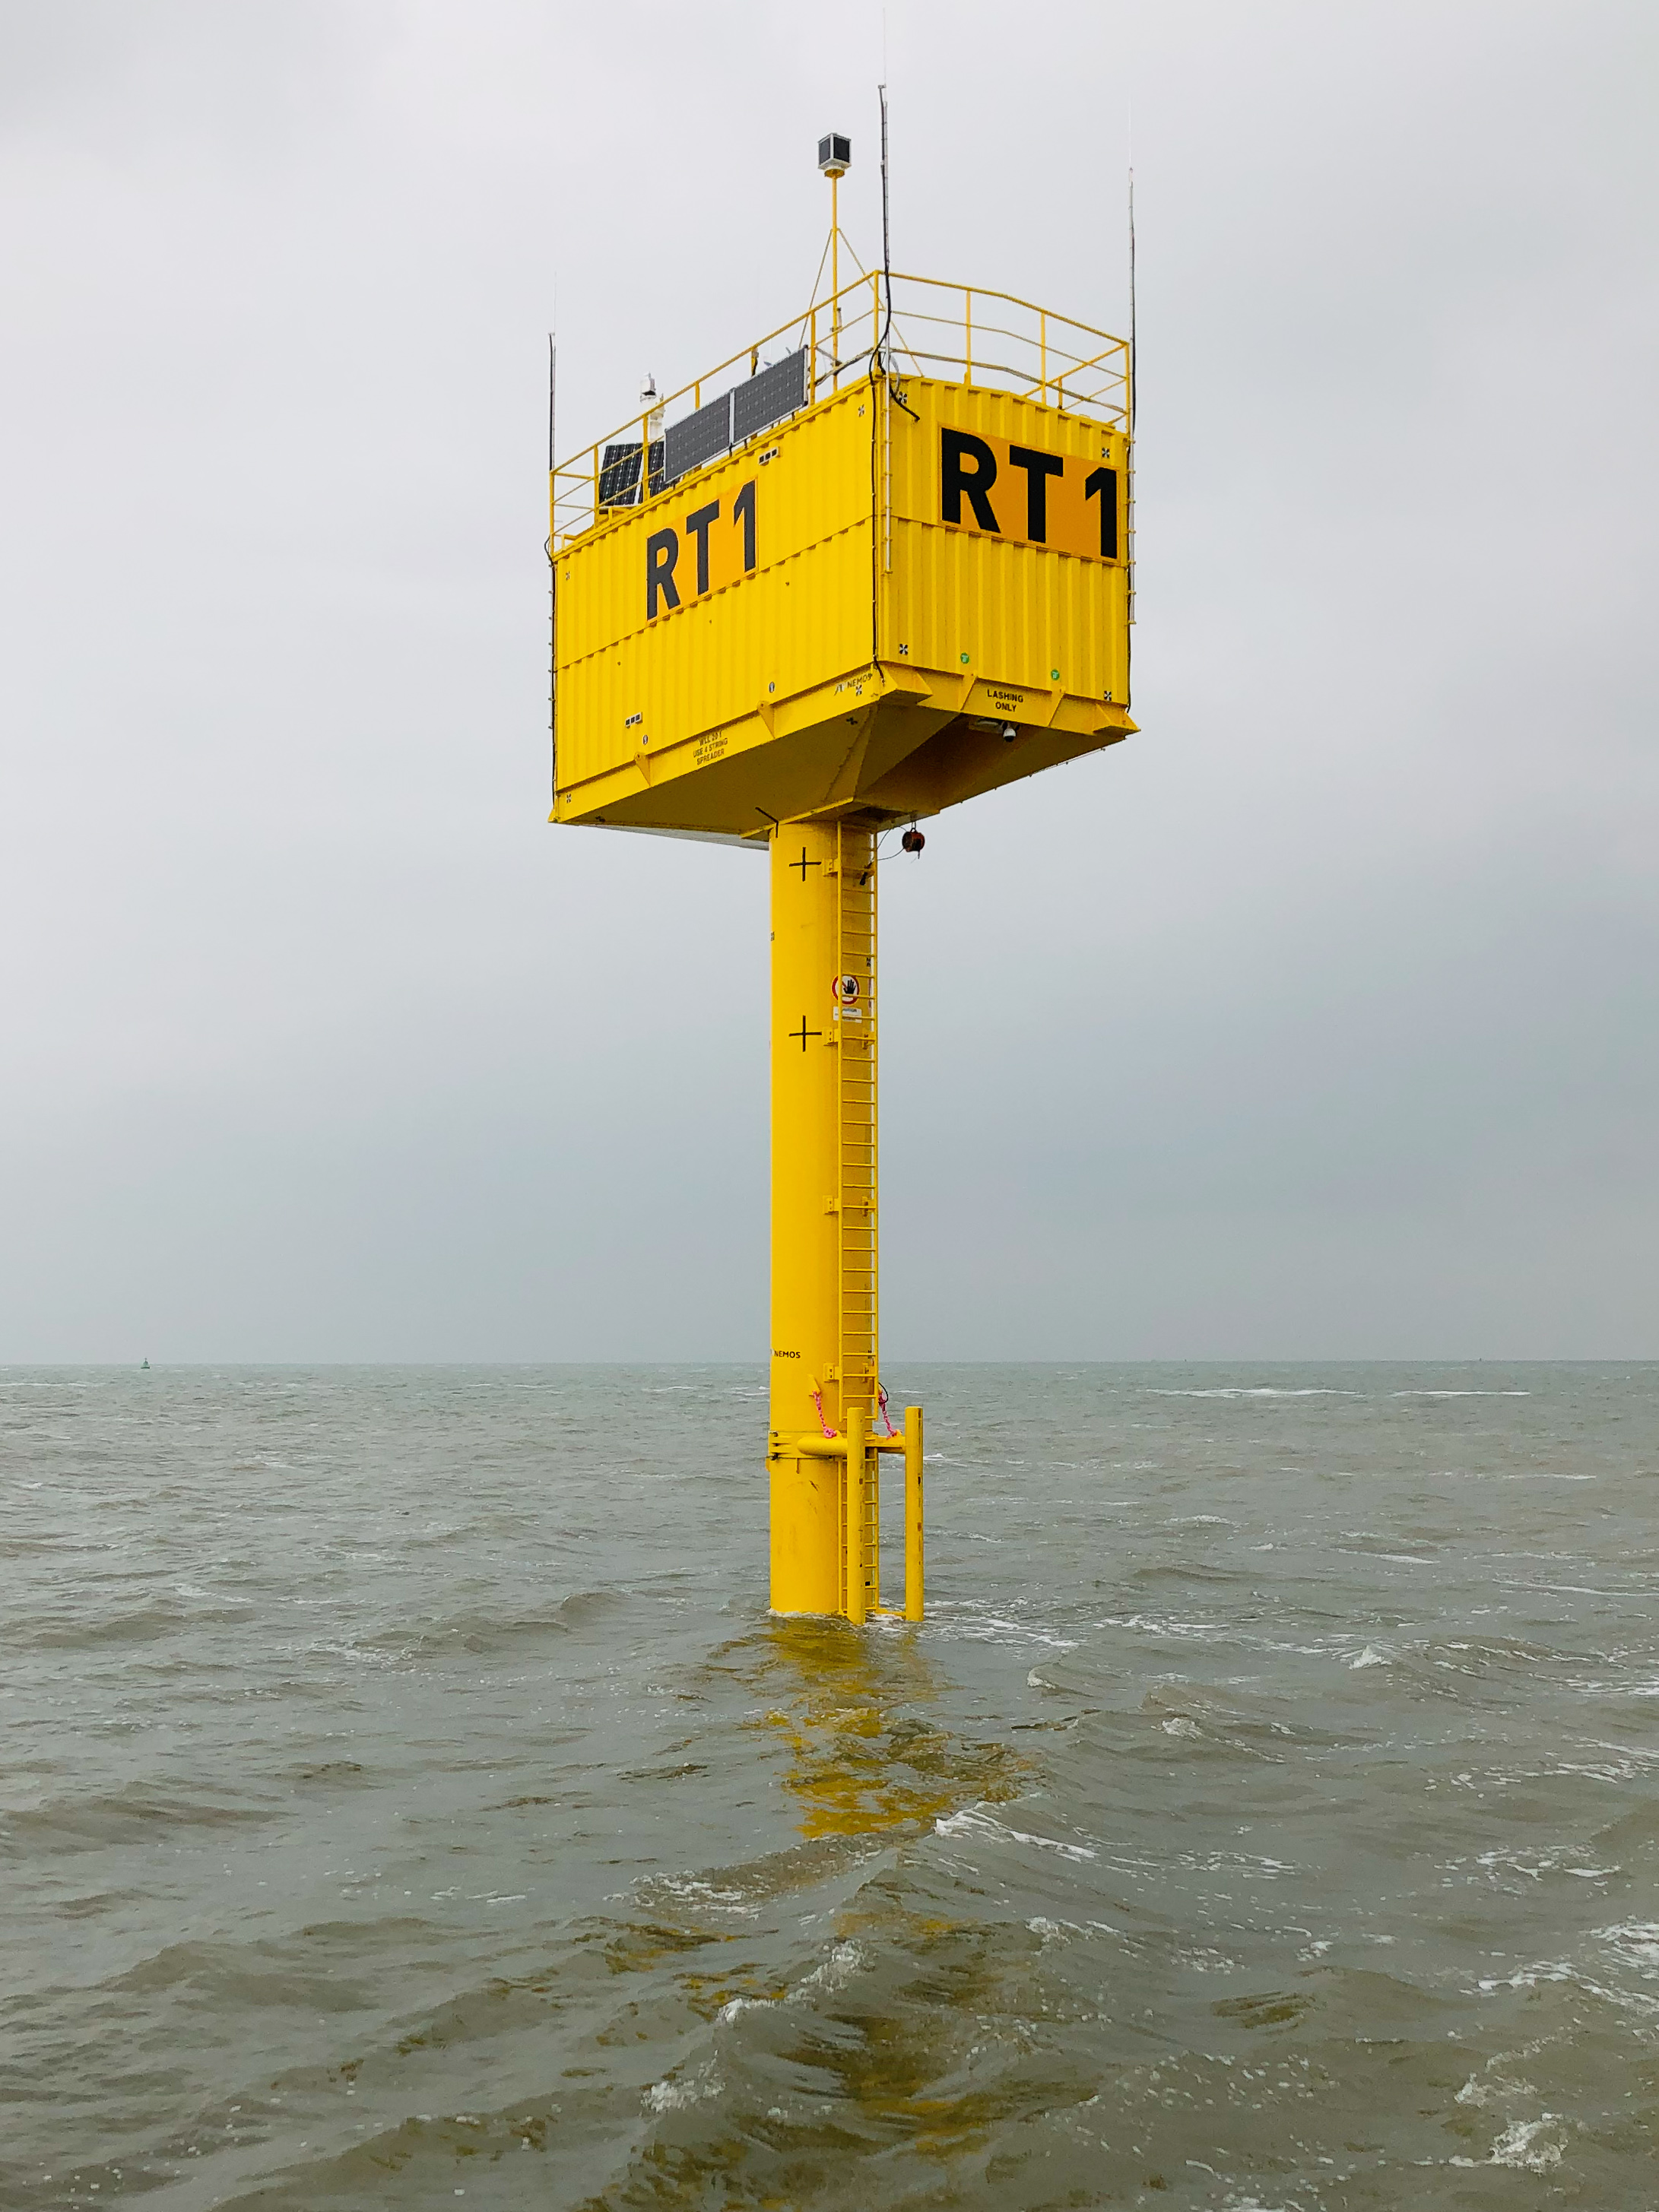 The NEMOS Ostend Research Tower